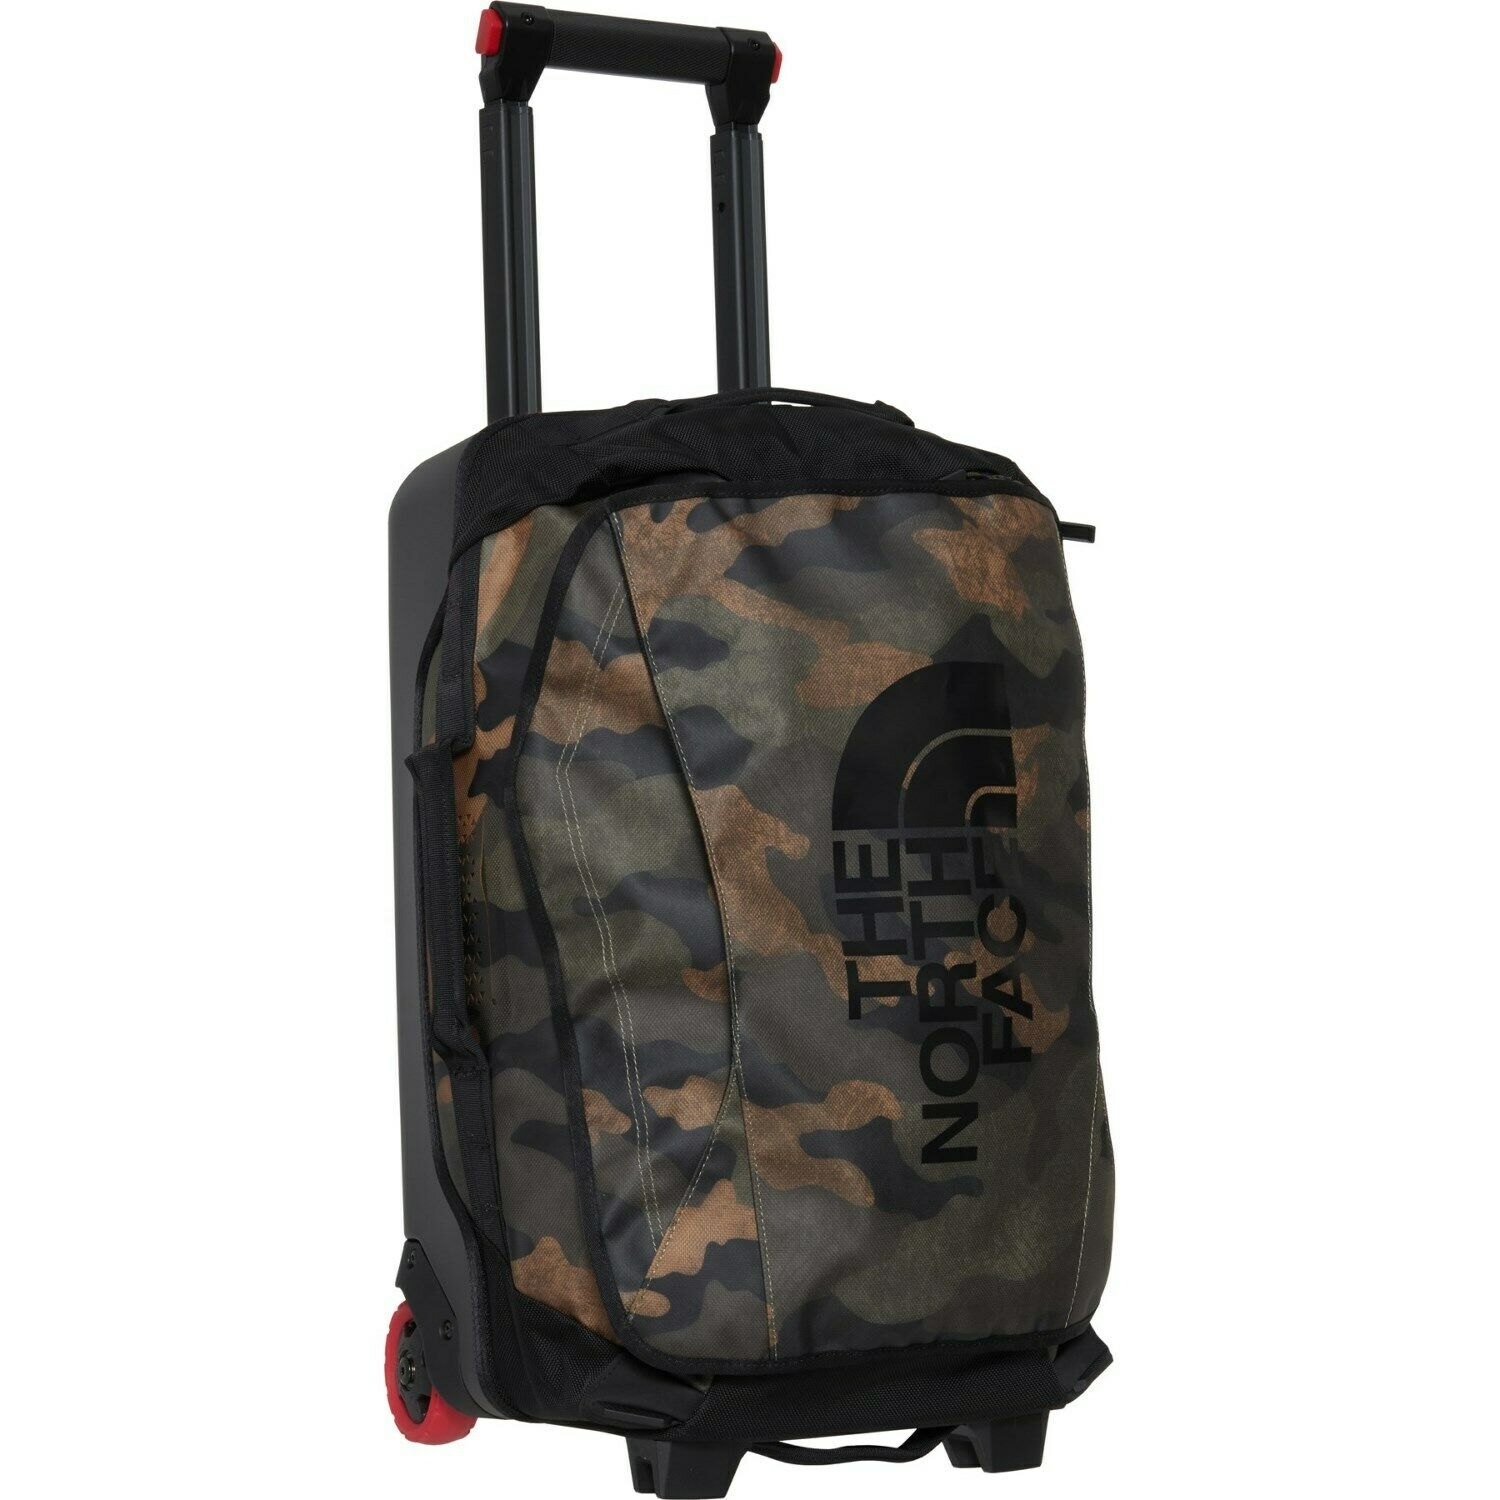 """The North Face Rolling Thunder 22"""" Carry on Luggage Suitcase"""